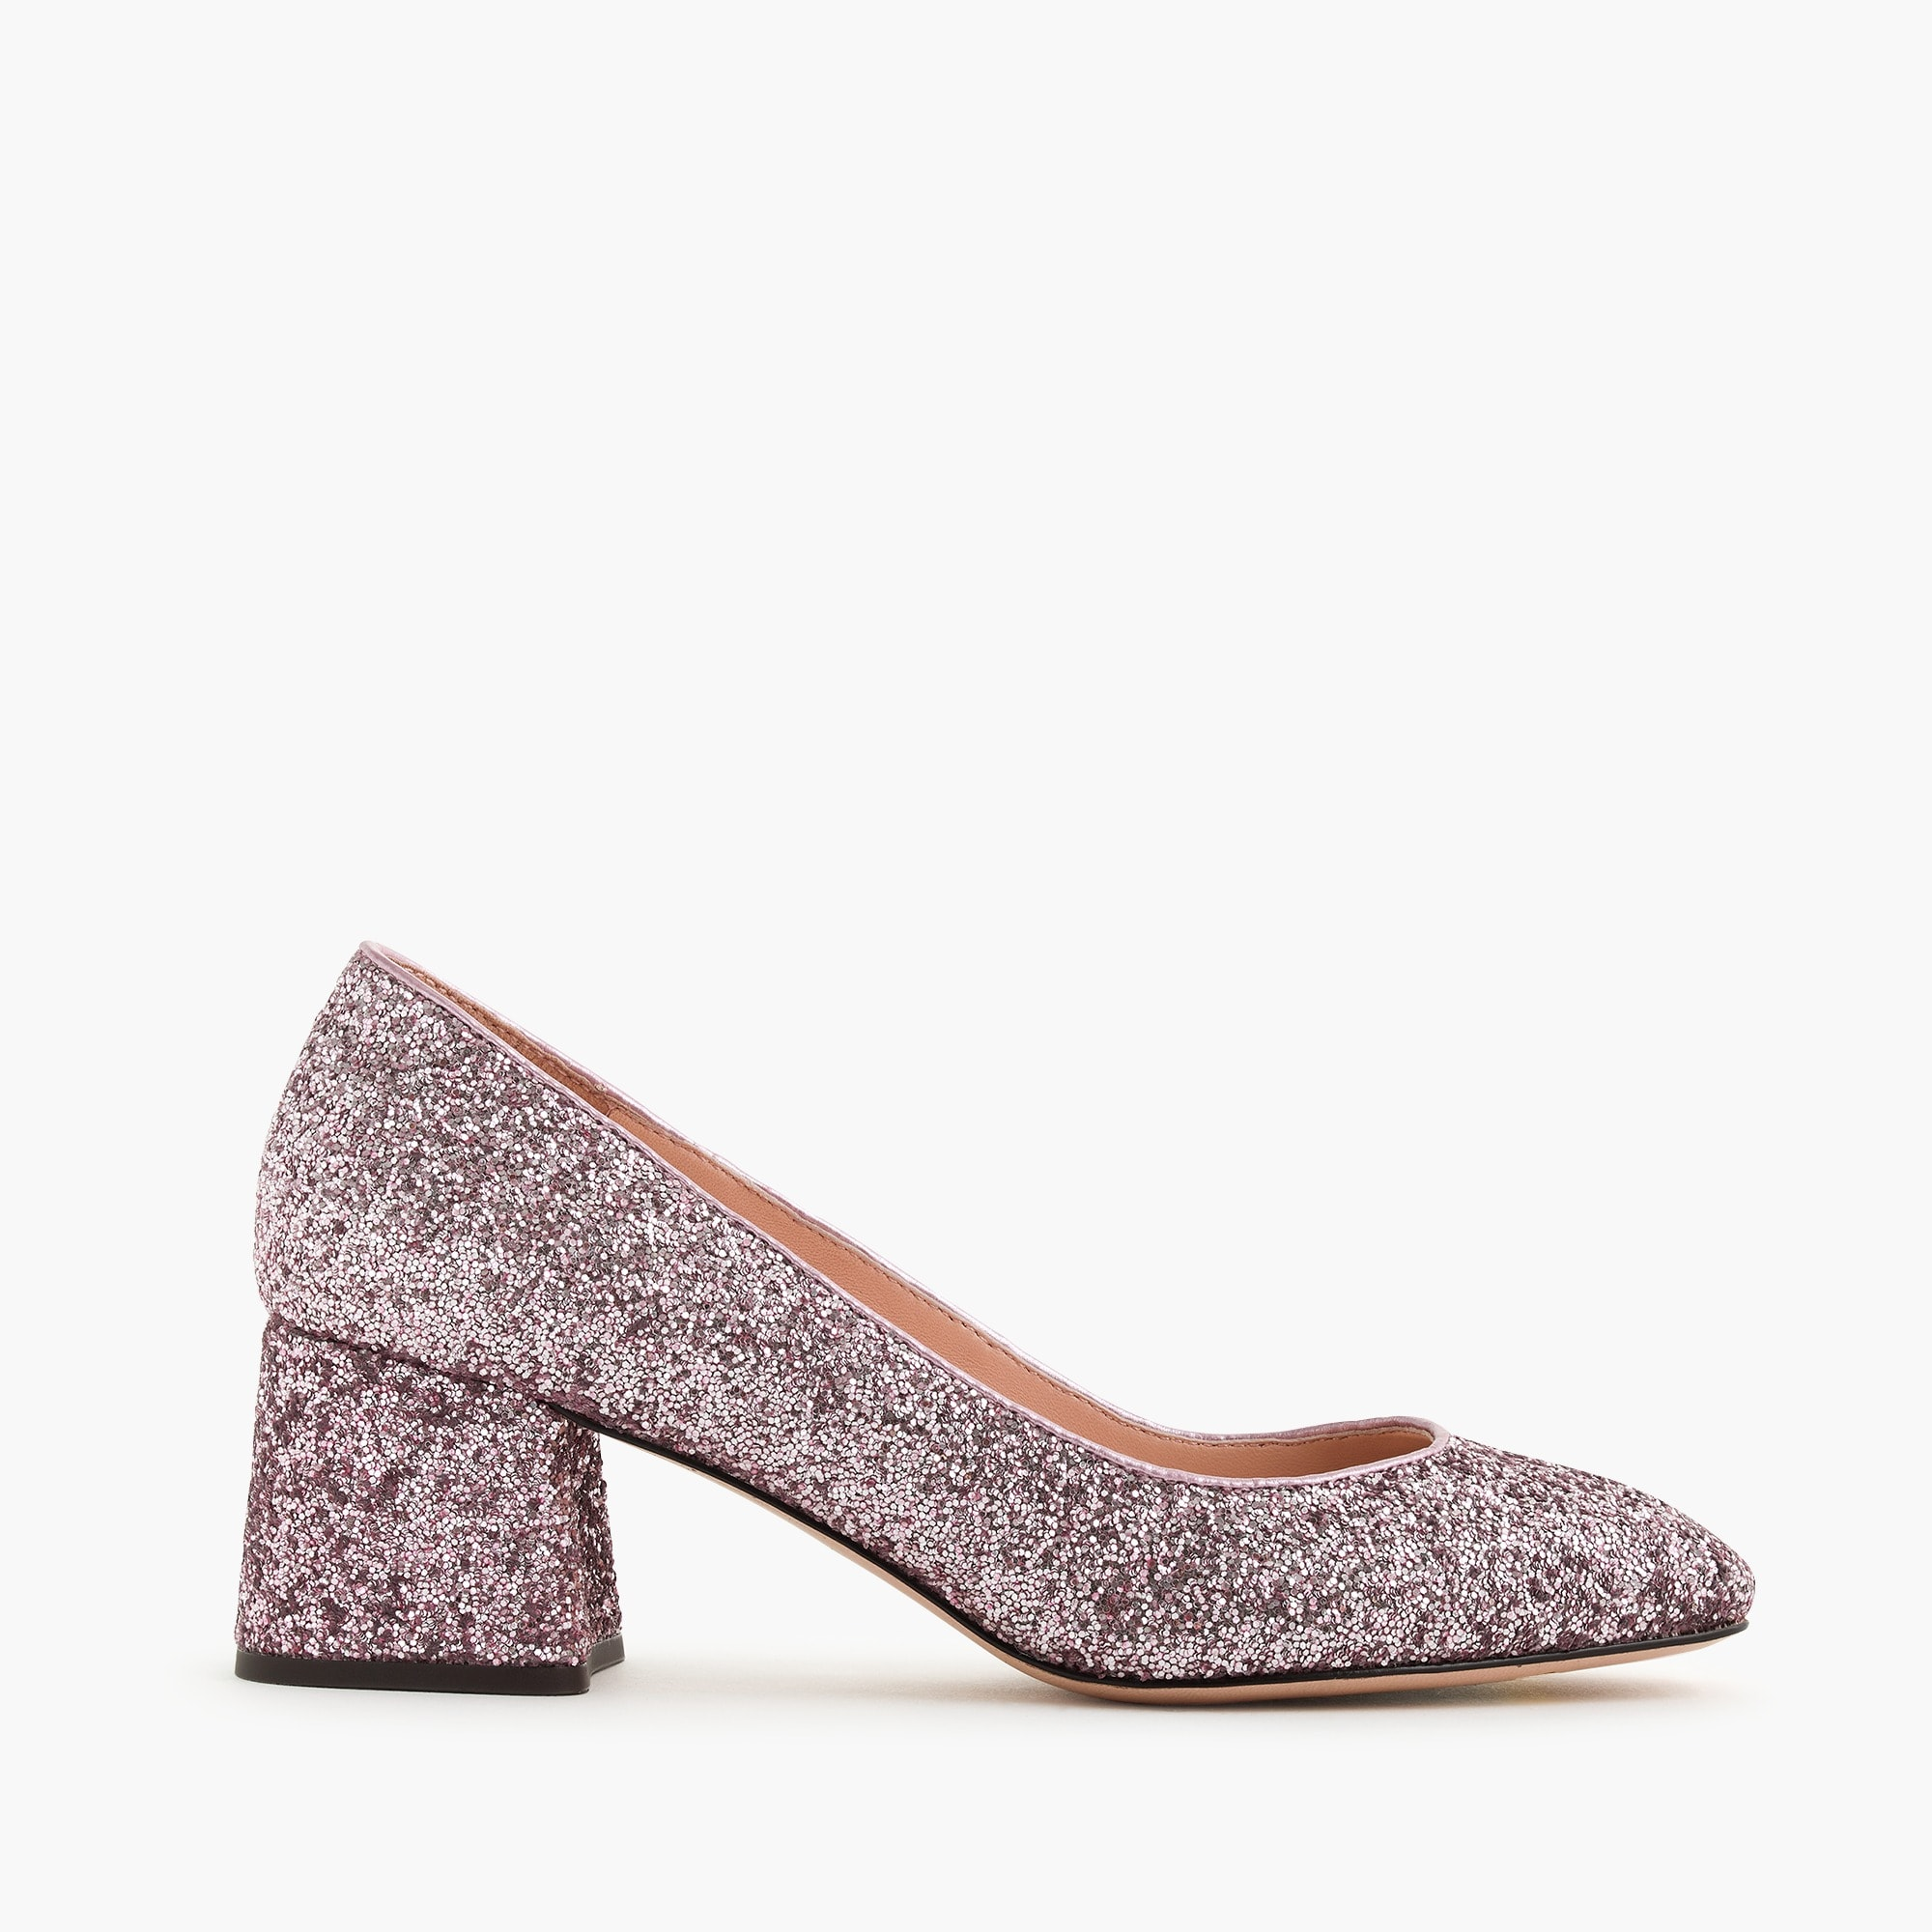 Block-heel pumps in glitter